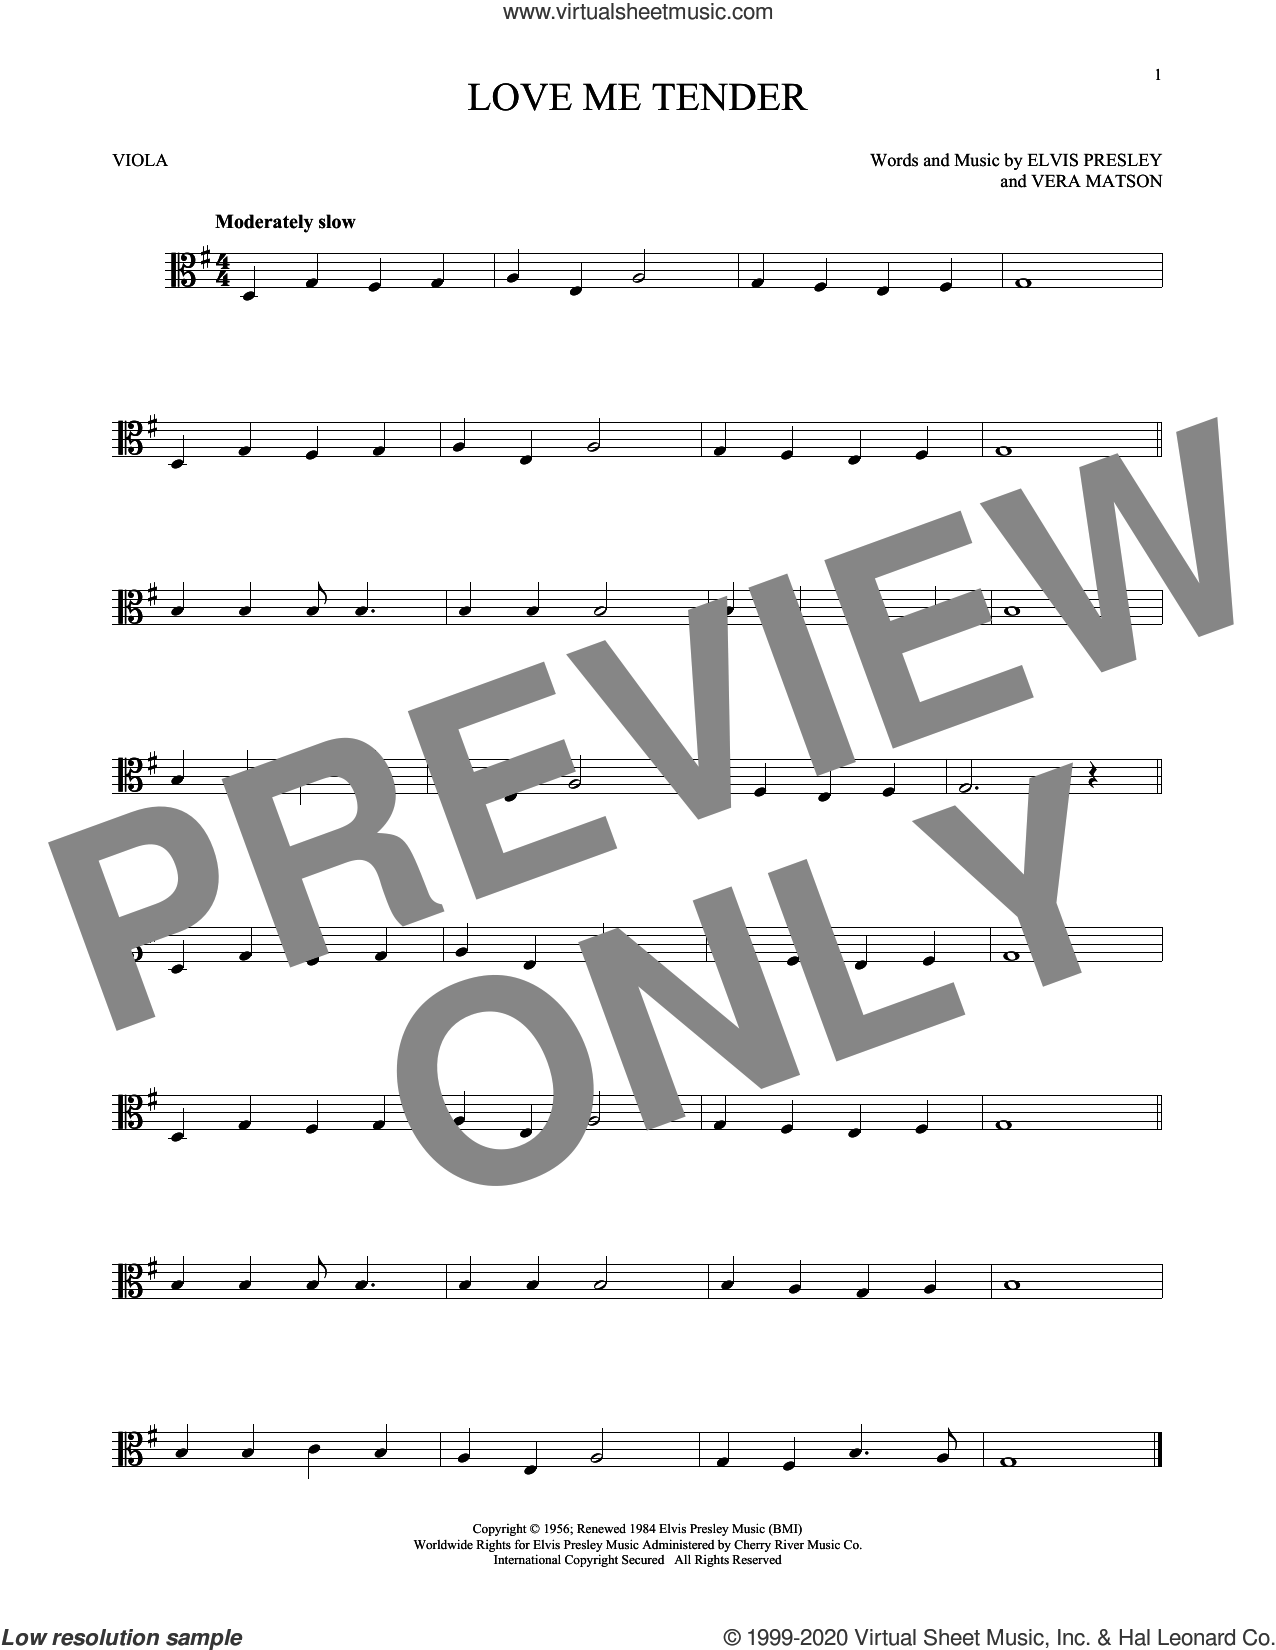 Love Me Tender sheet music for viola solo by Elvis Presley and Vera Matson, intermediate skill level